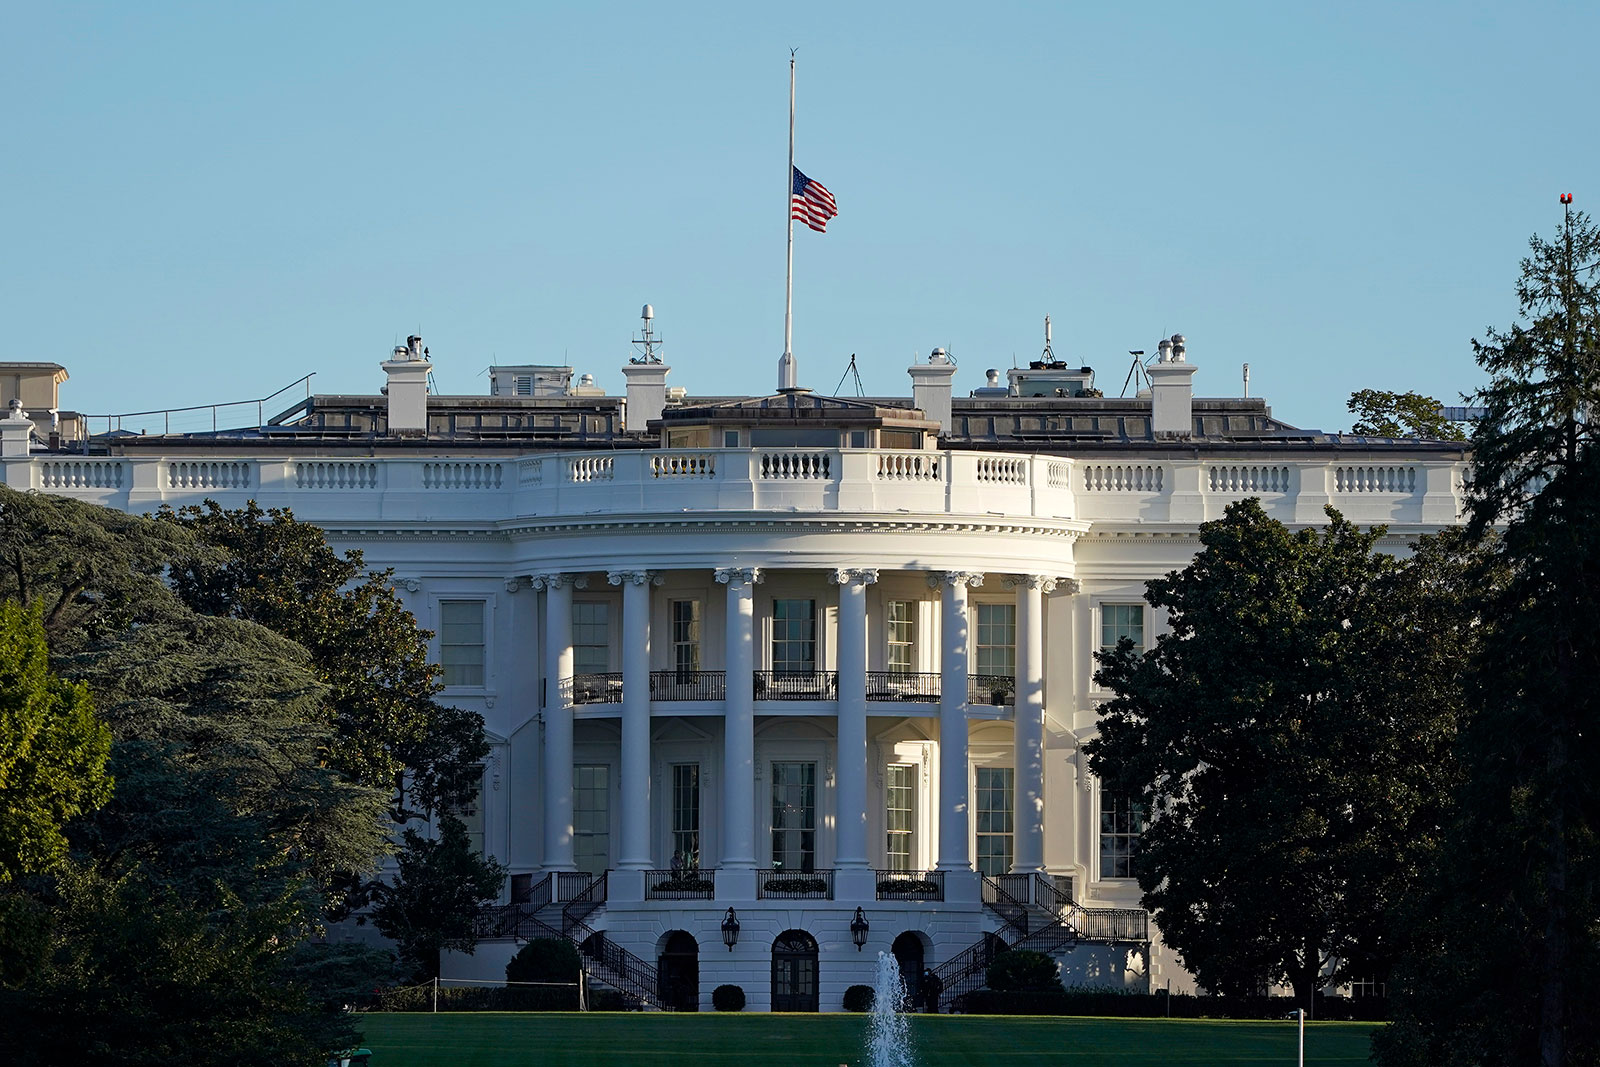 The American flag flies at half-staff above the White House on Saturday.